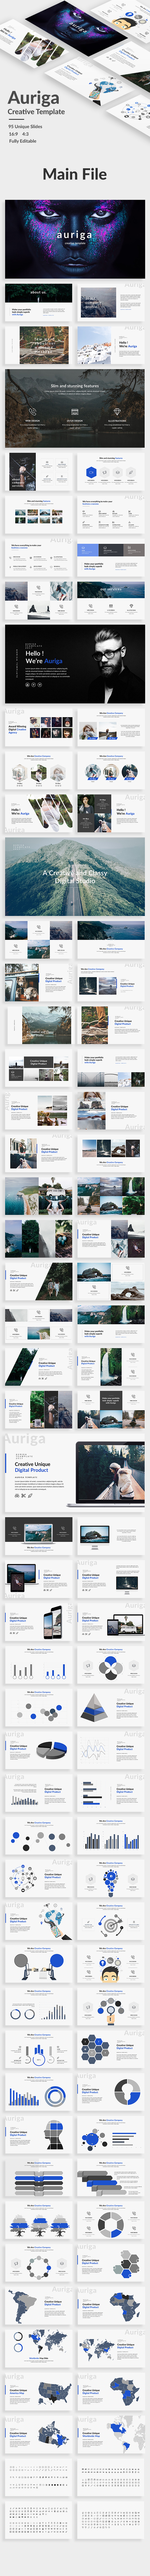 Auriga Creative Powerpoint Template